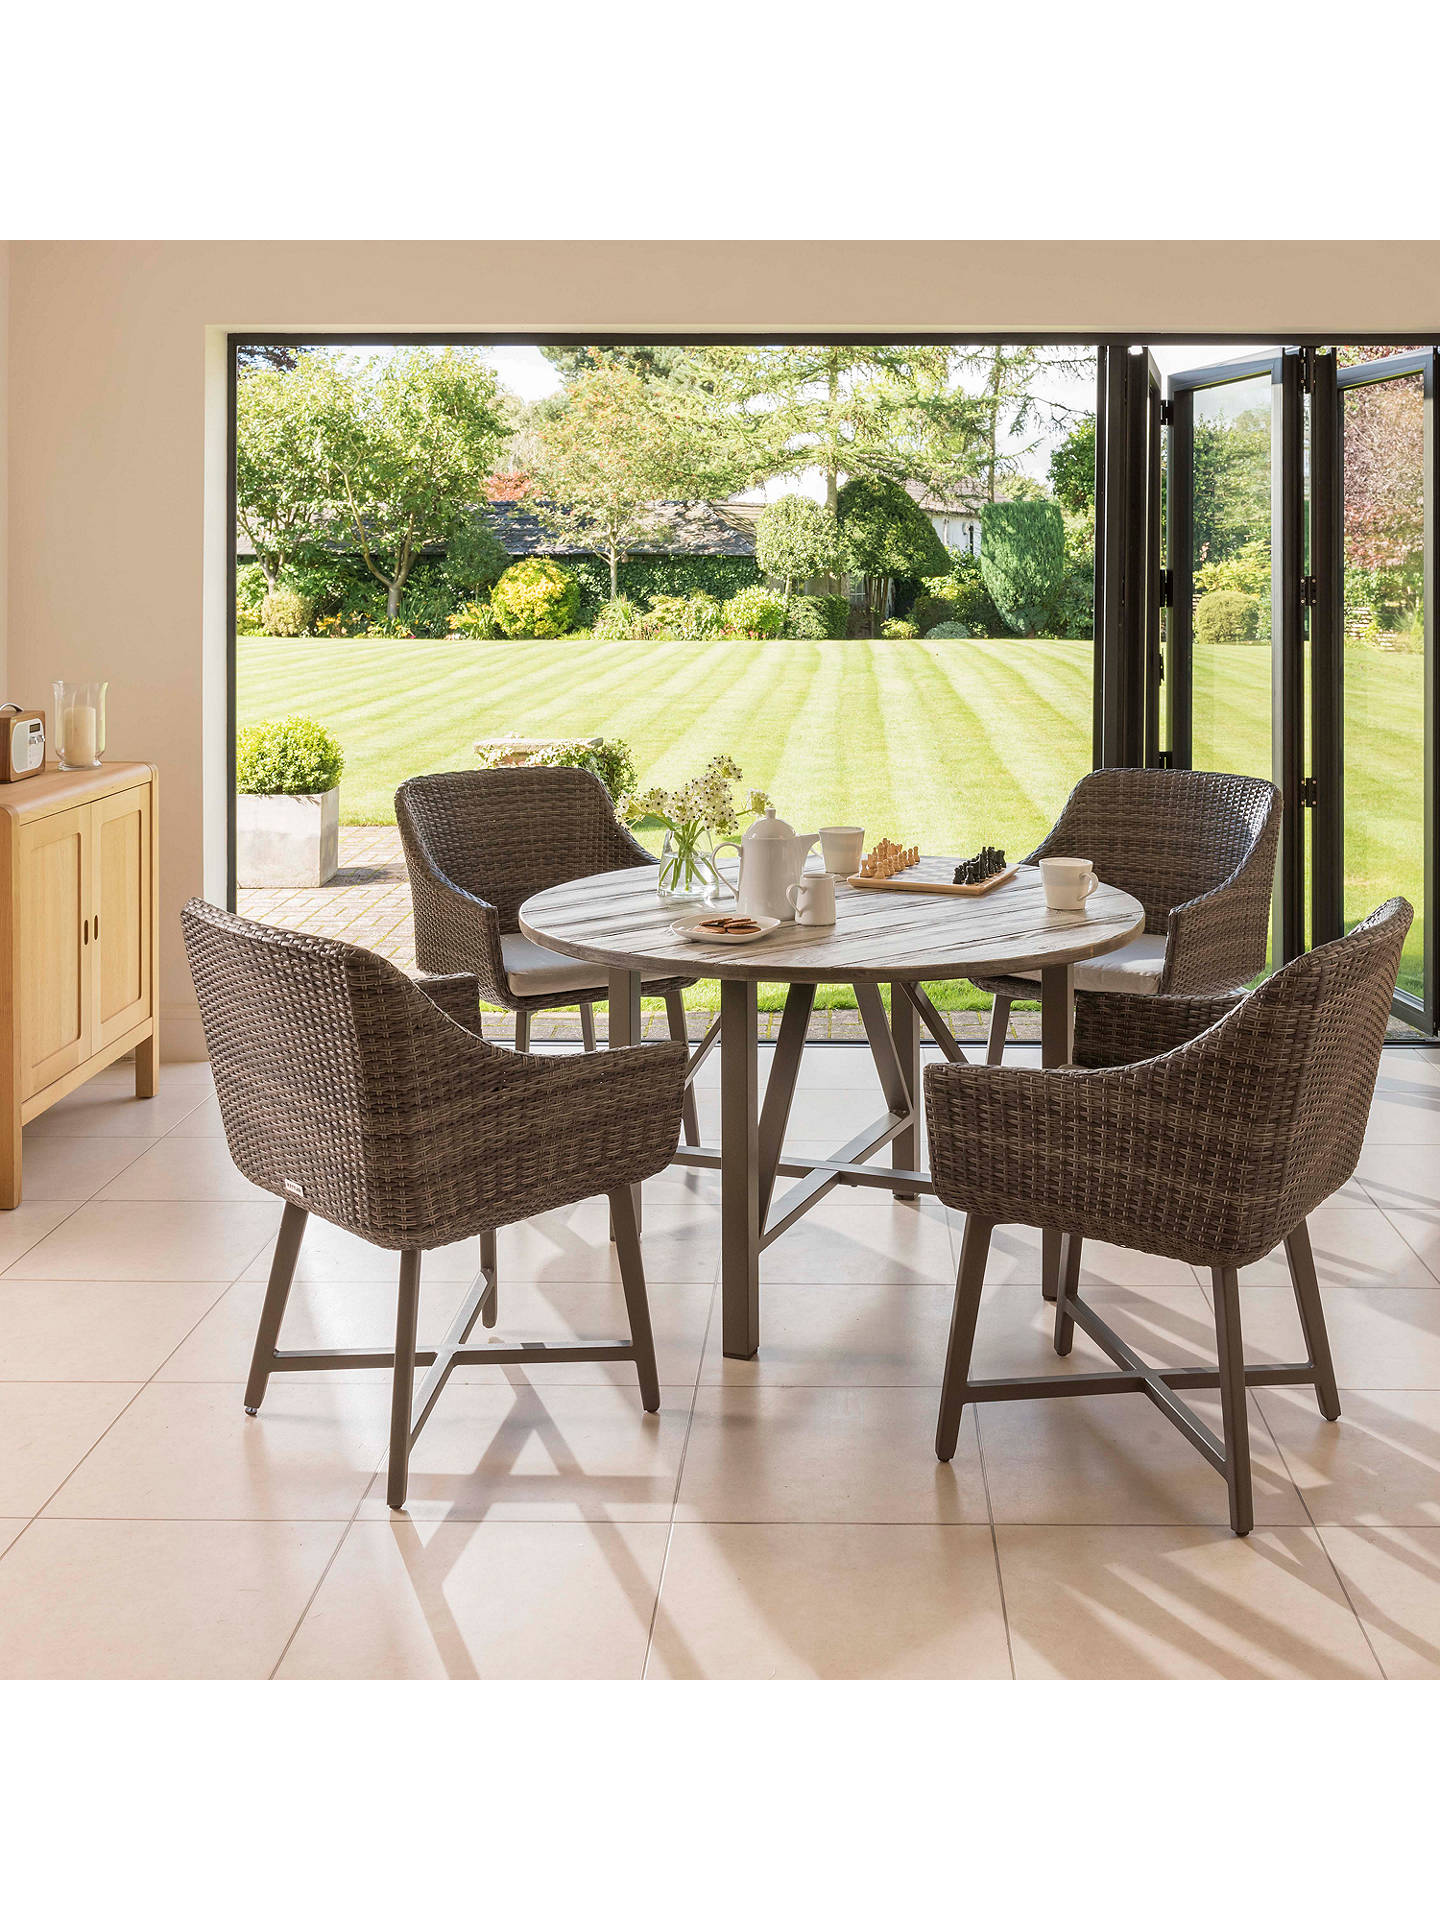 8cbb9484640b ... Buy KETTLER LaMode 4 Seater Garden Dining Table and Chairs Set, Olive  Grey Online at ...